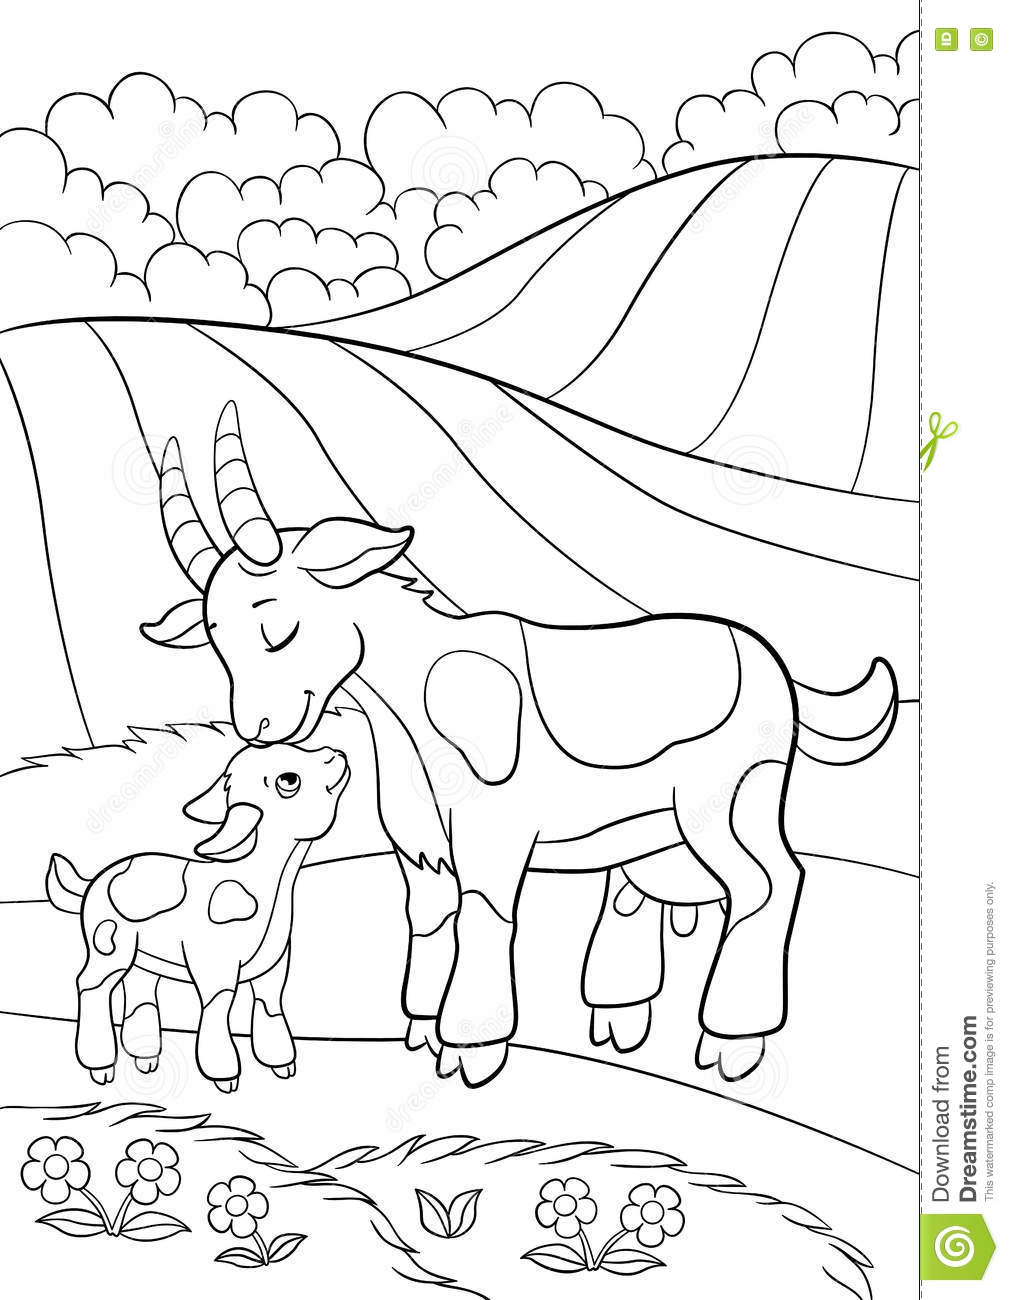 goat picture for colouring mountain goat coloring pages at getdrawings free download colouring for goat picture